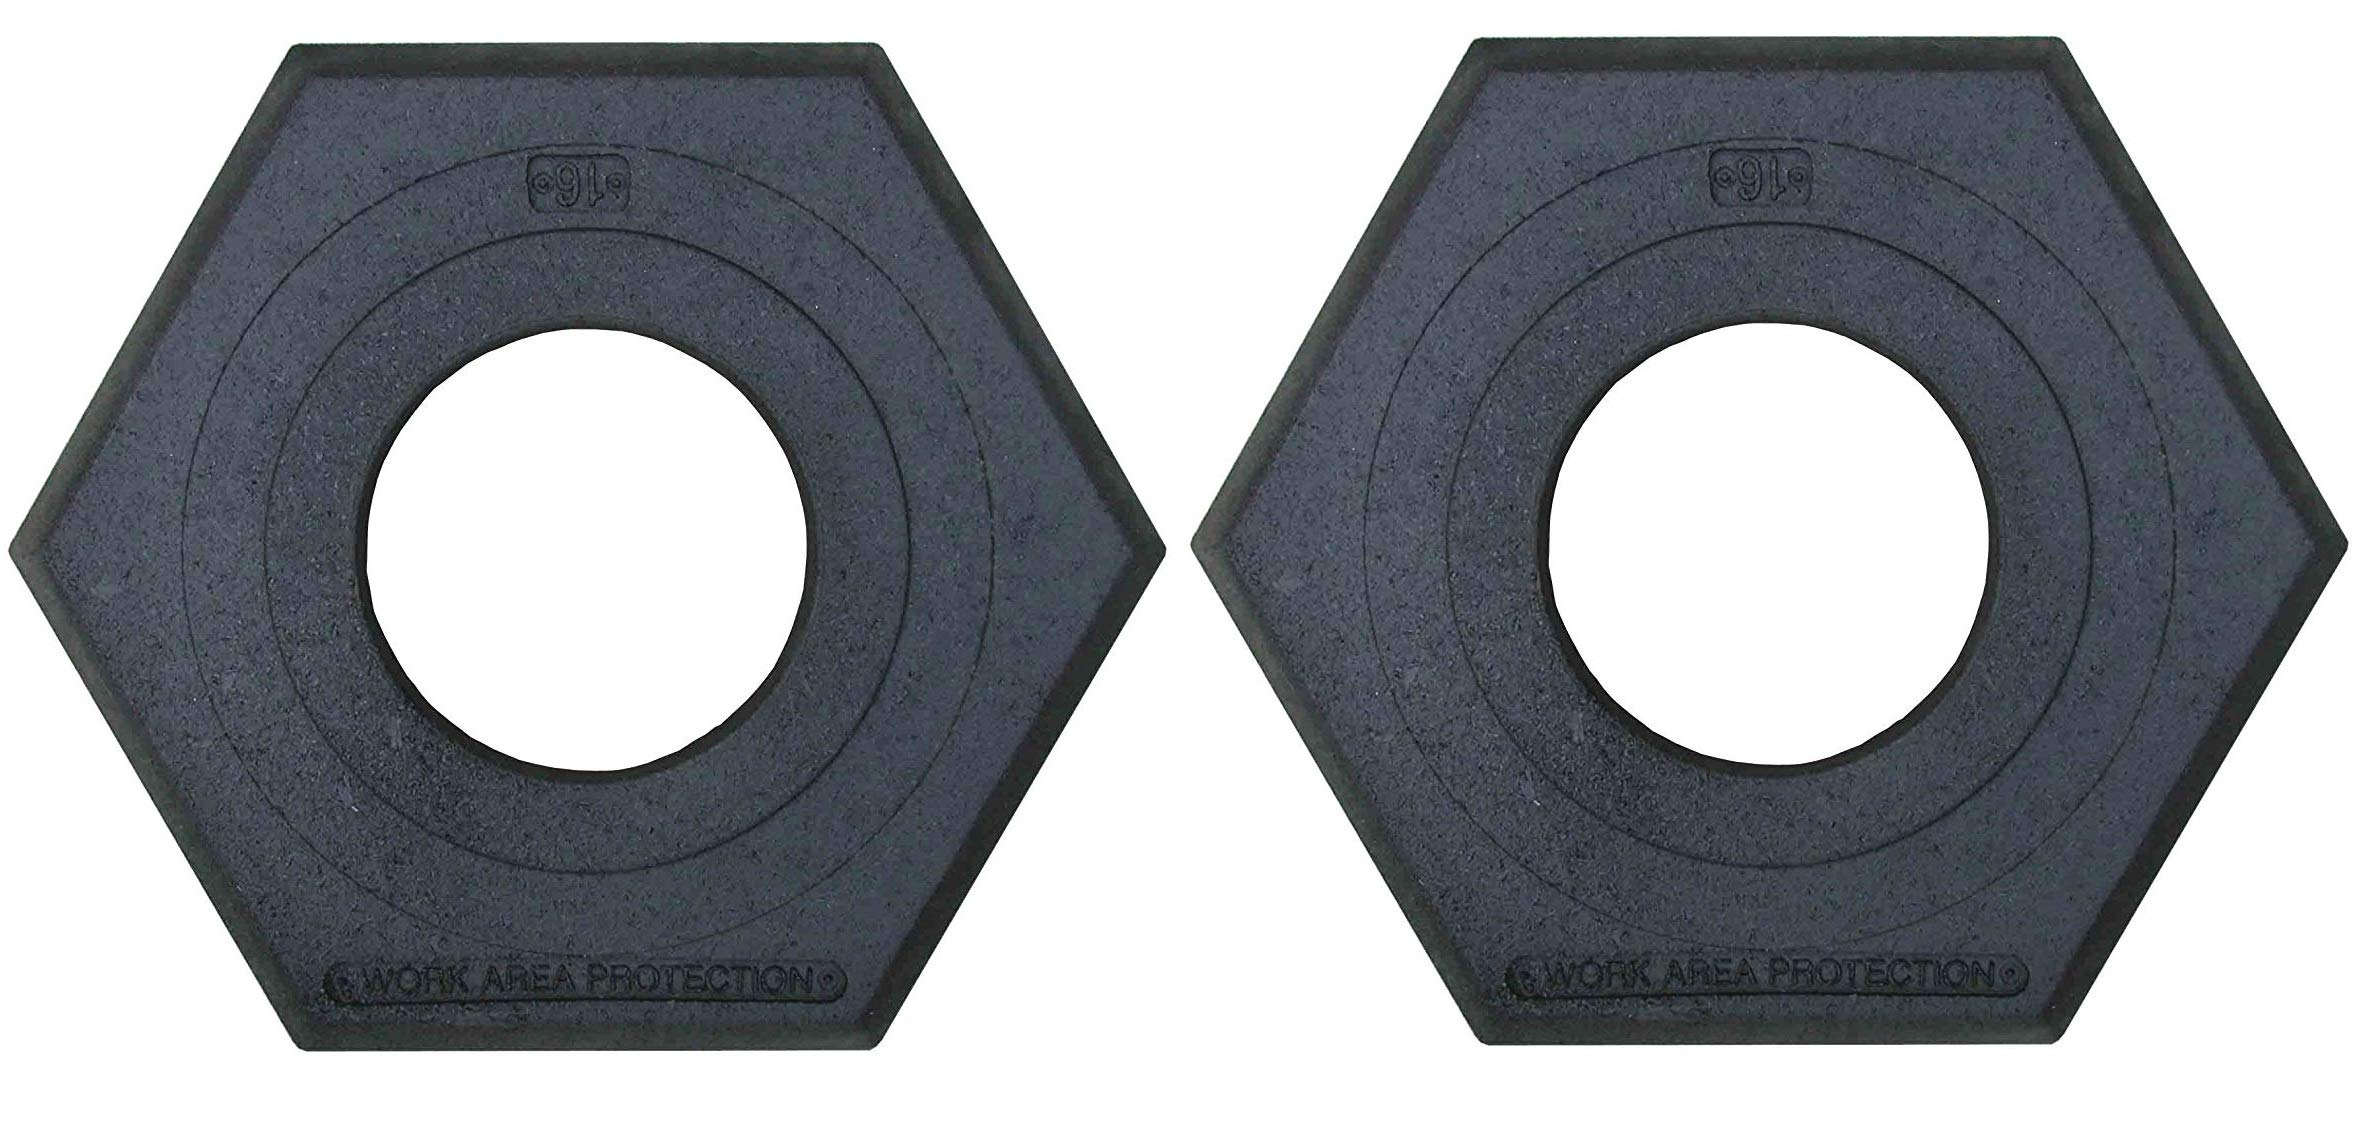 Work Area Protection CB-16 Rubber Channelizer Cone Base, 2.4'' Height, 16 lbs (Тwo Рack)